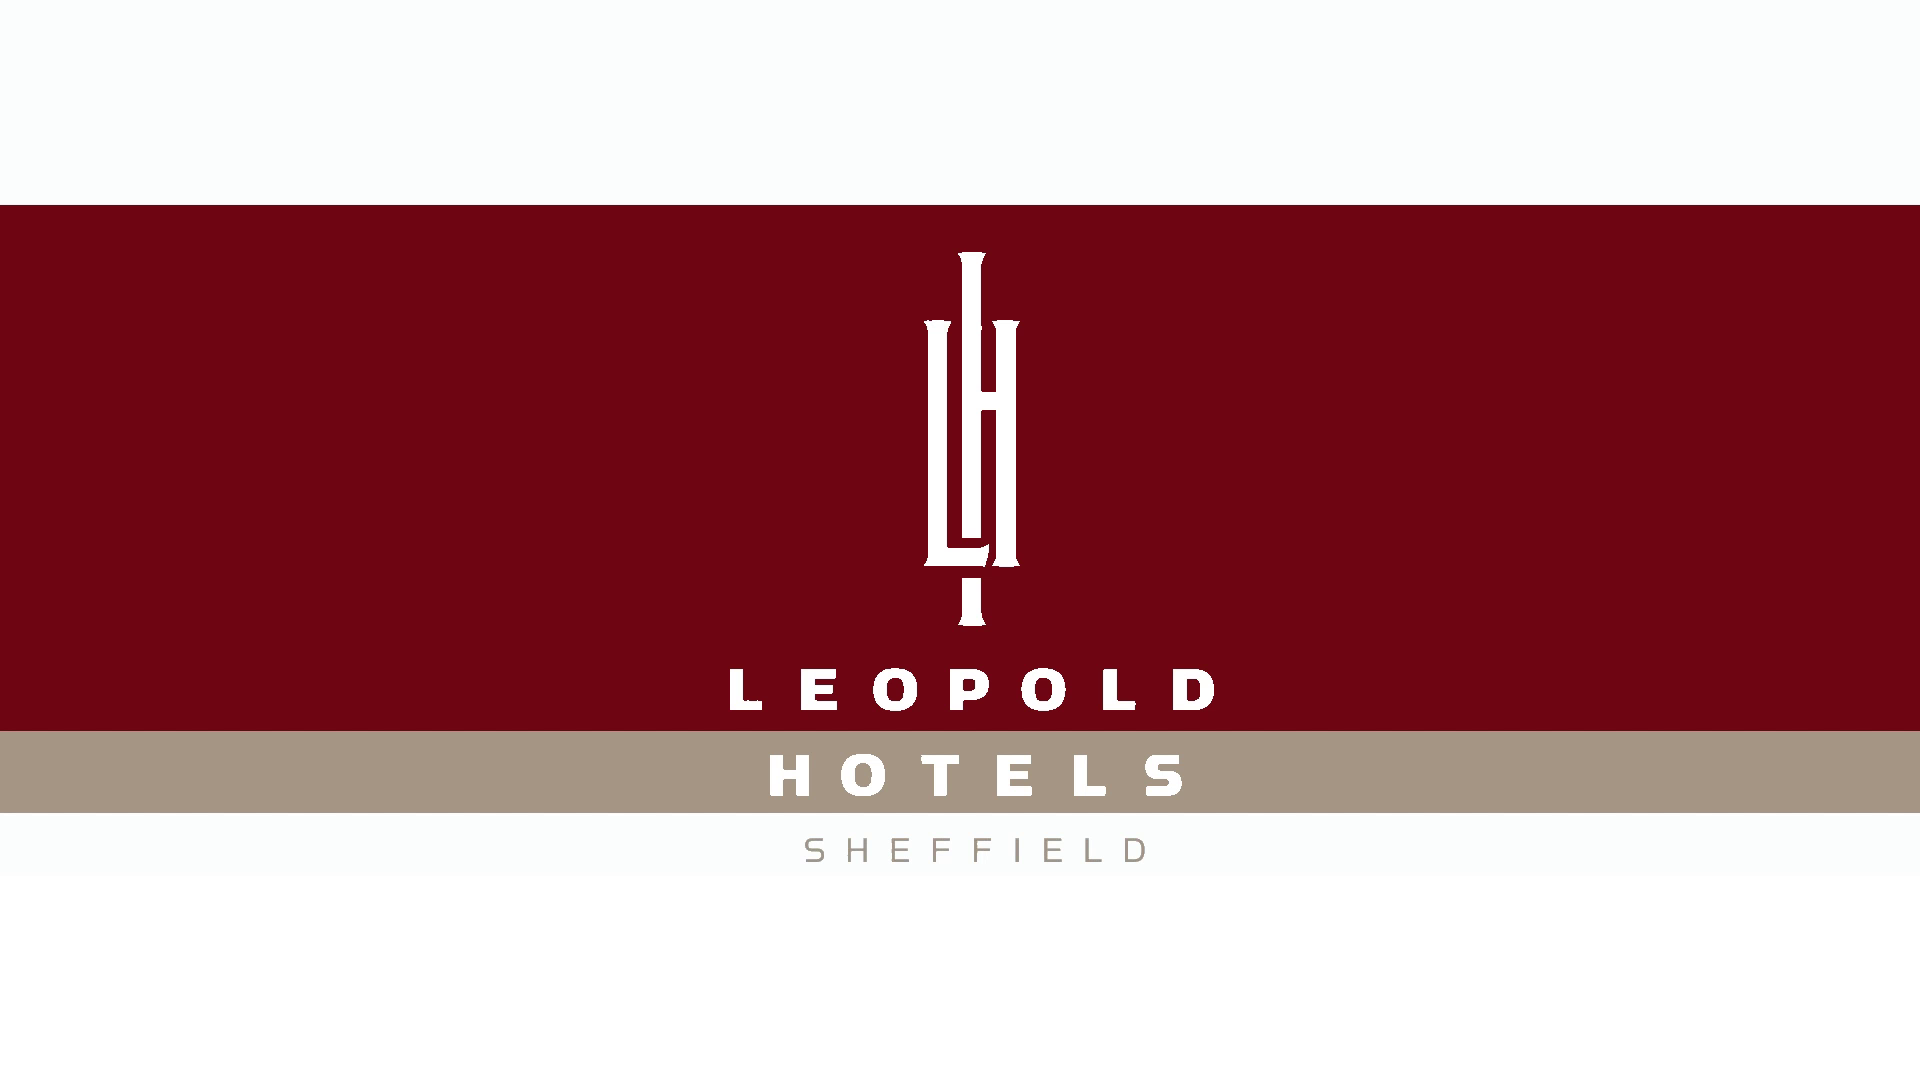 leopold hotels.png